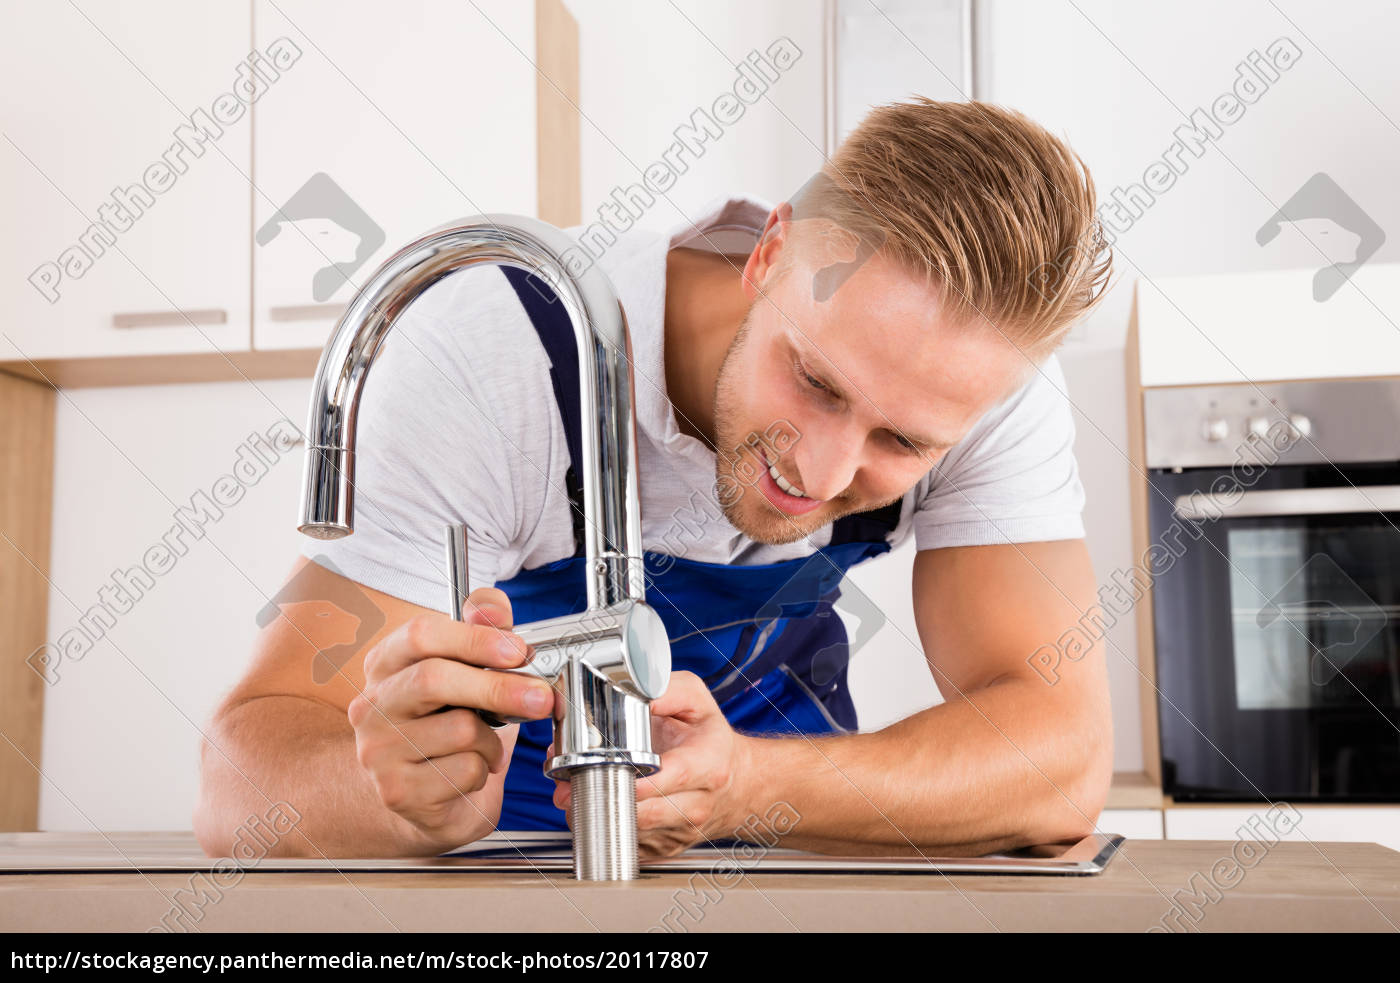 plumber, fixing, faucet, in, kitchen - 20117807